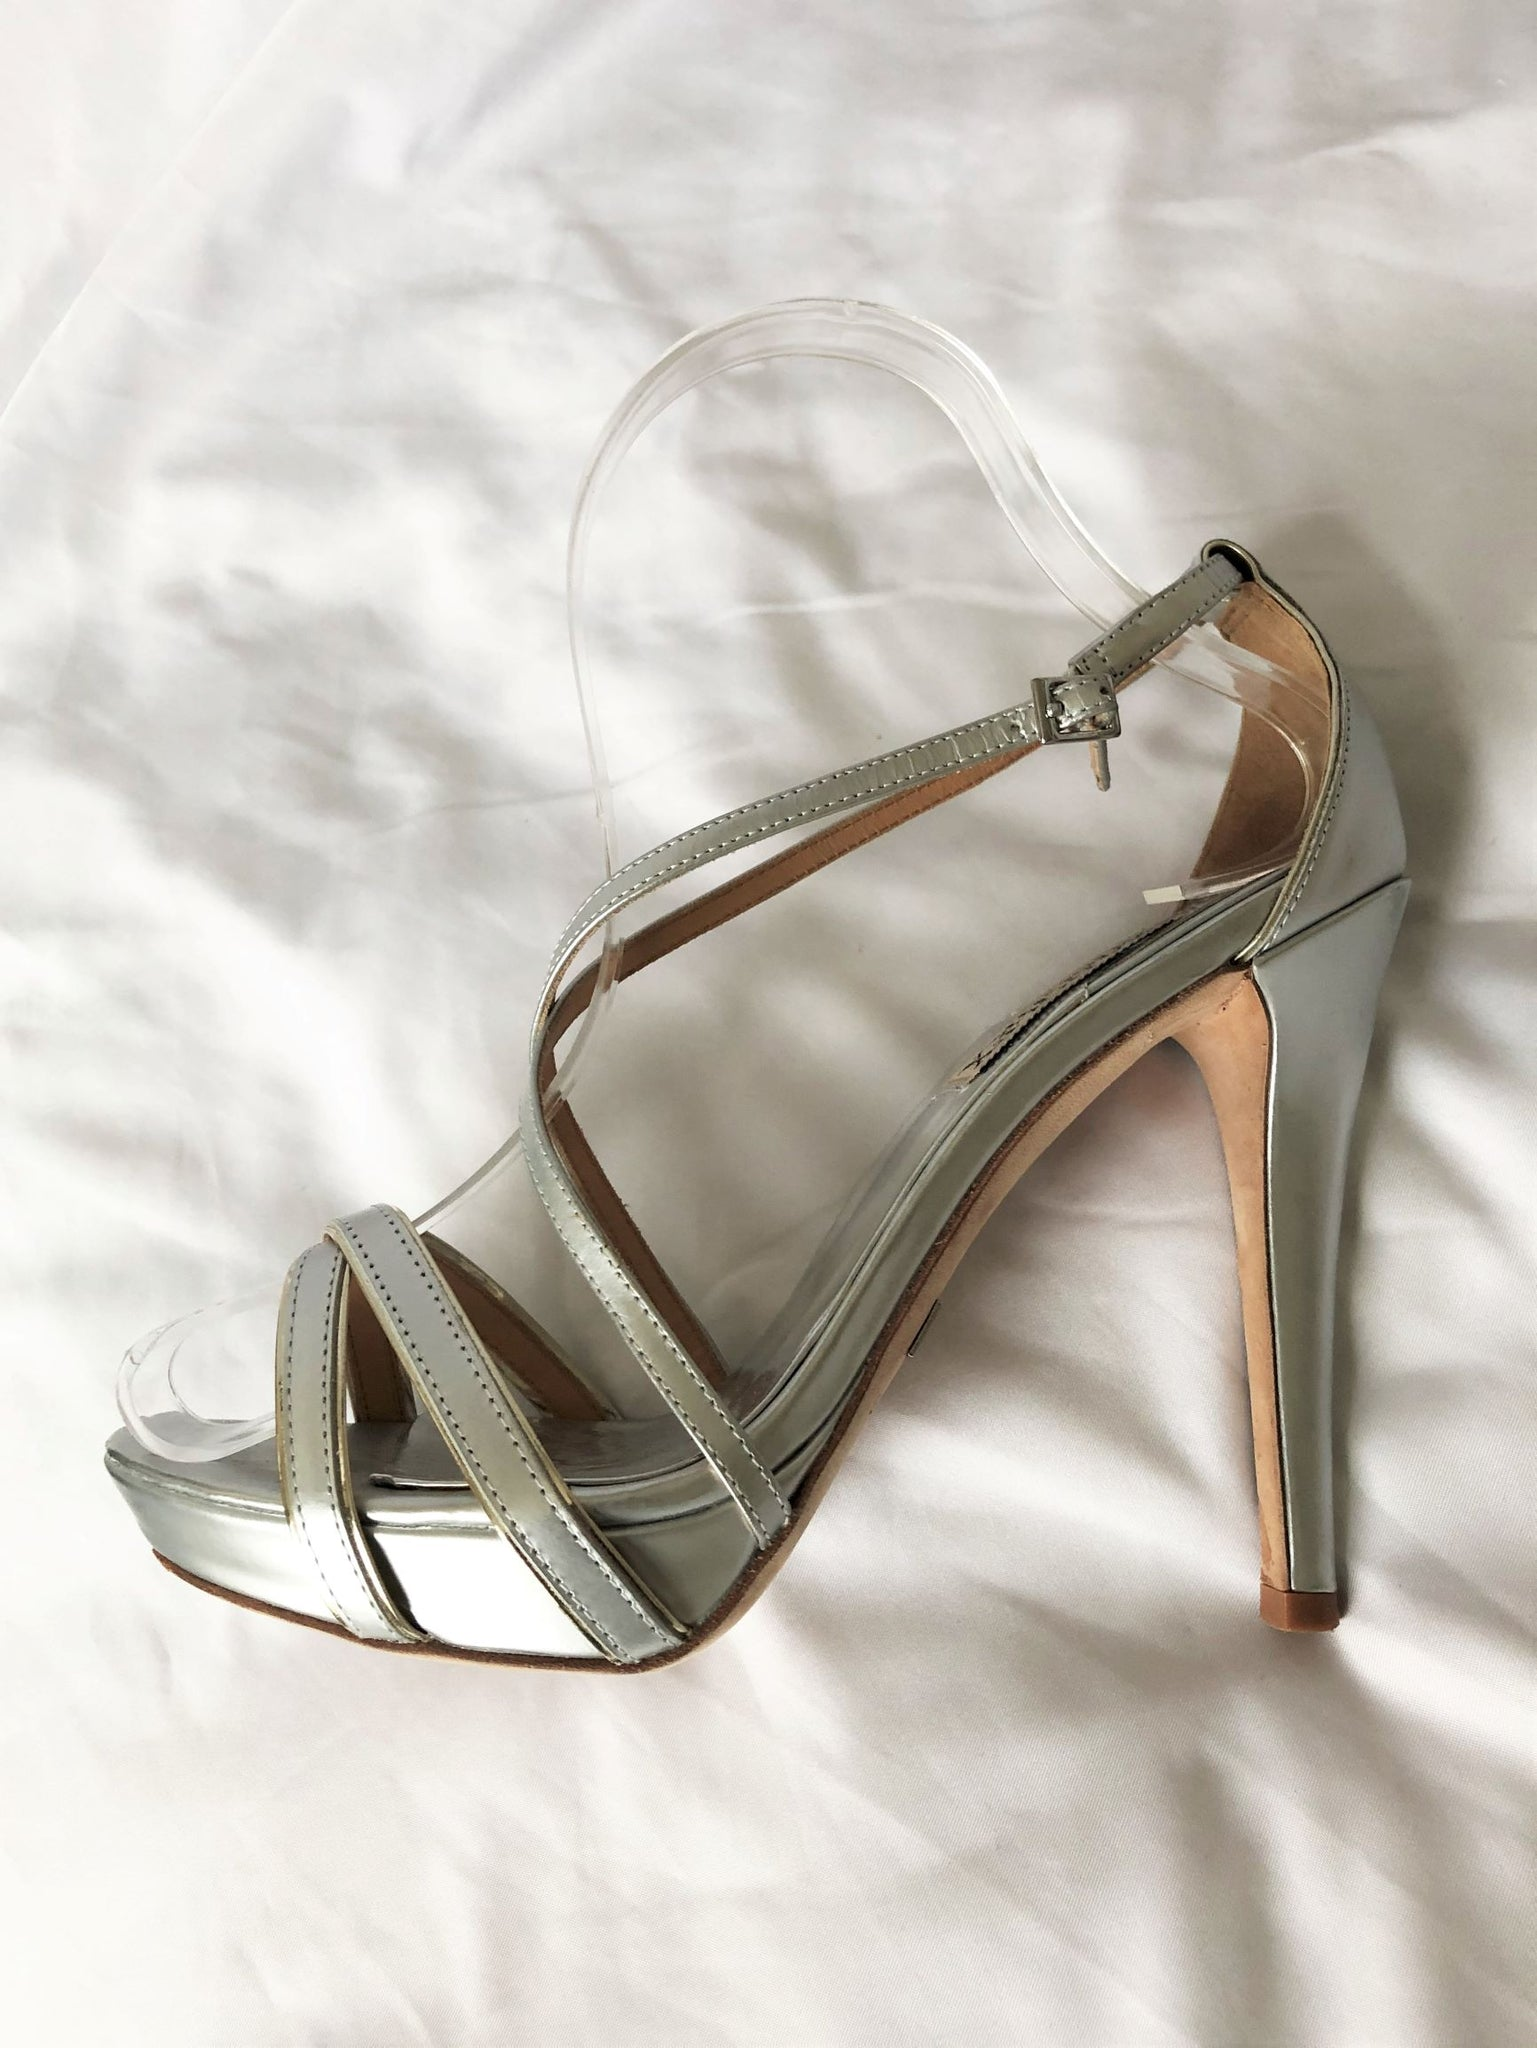 Badgley Mischka Size 7 Silver Leather Sandals